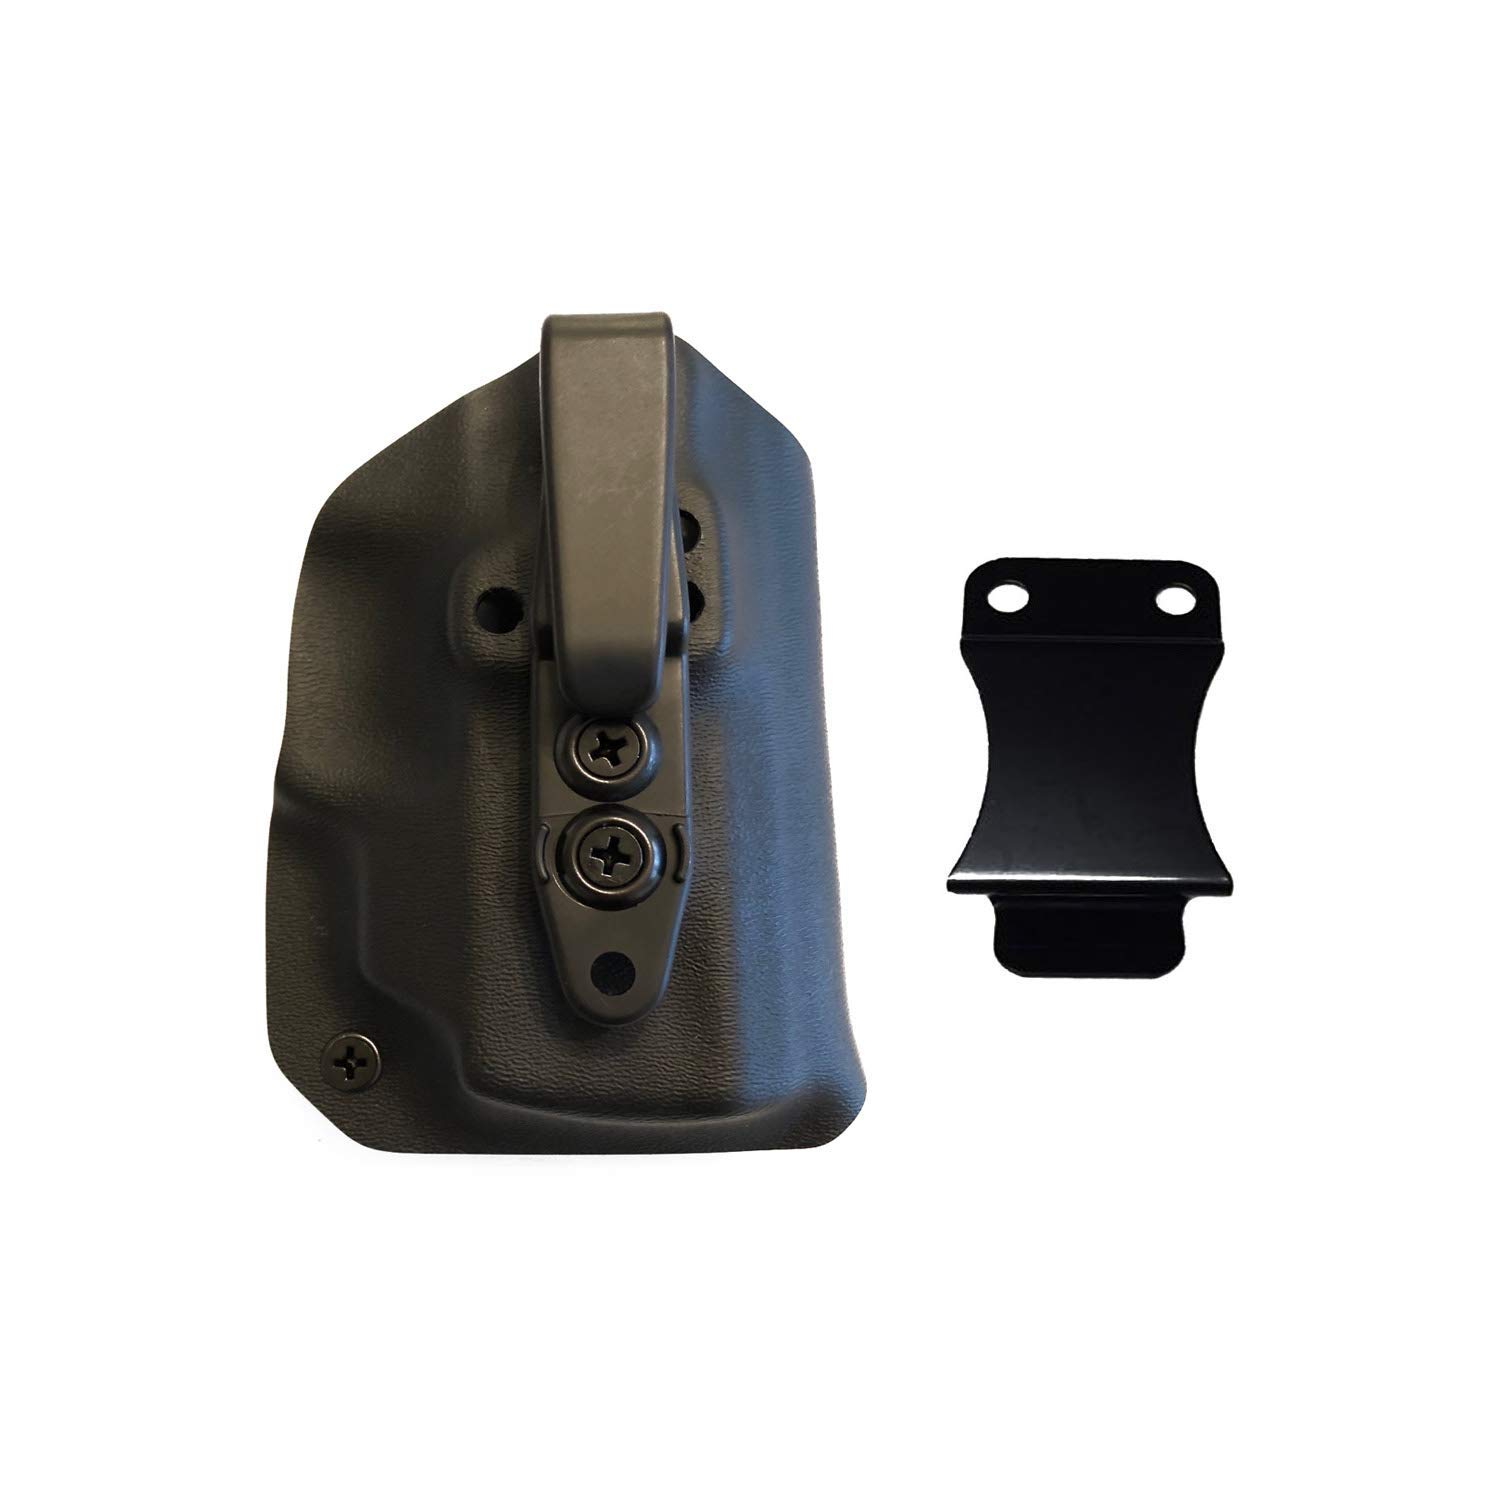 Elite Force Holsters Kydex Holster Limited time for free shipping - Interchang Taser 2021 model fits Pulse